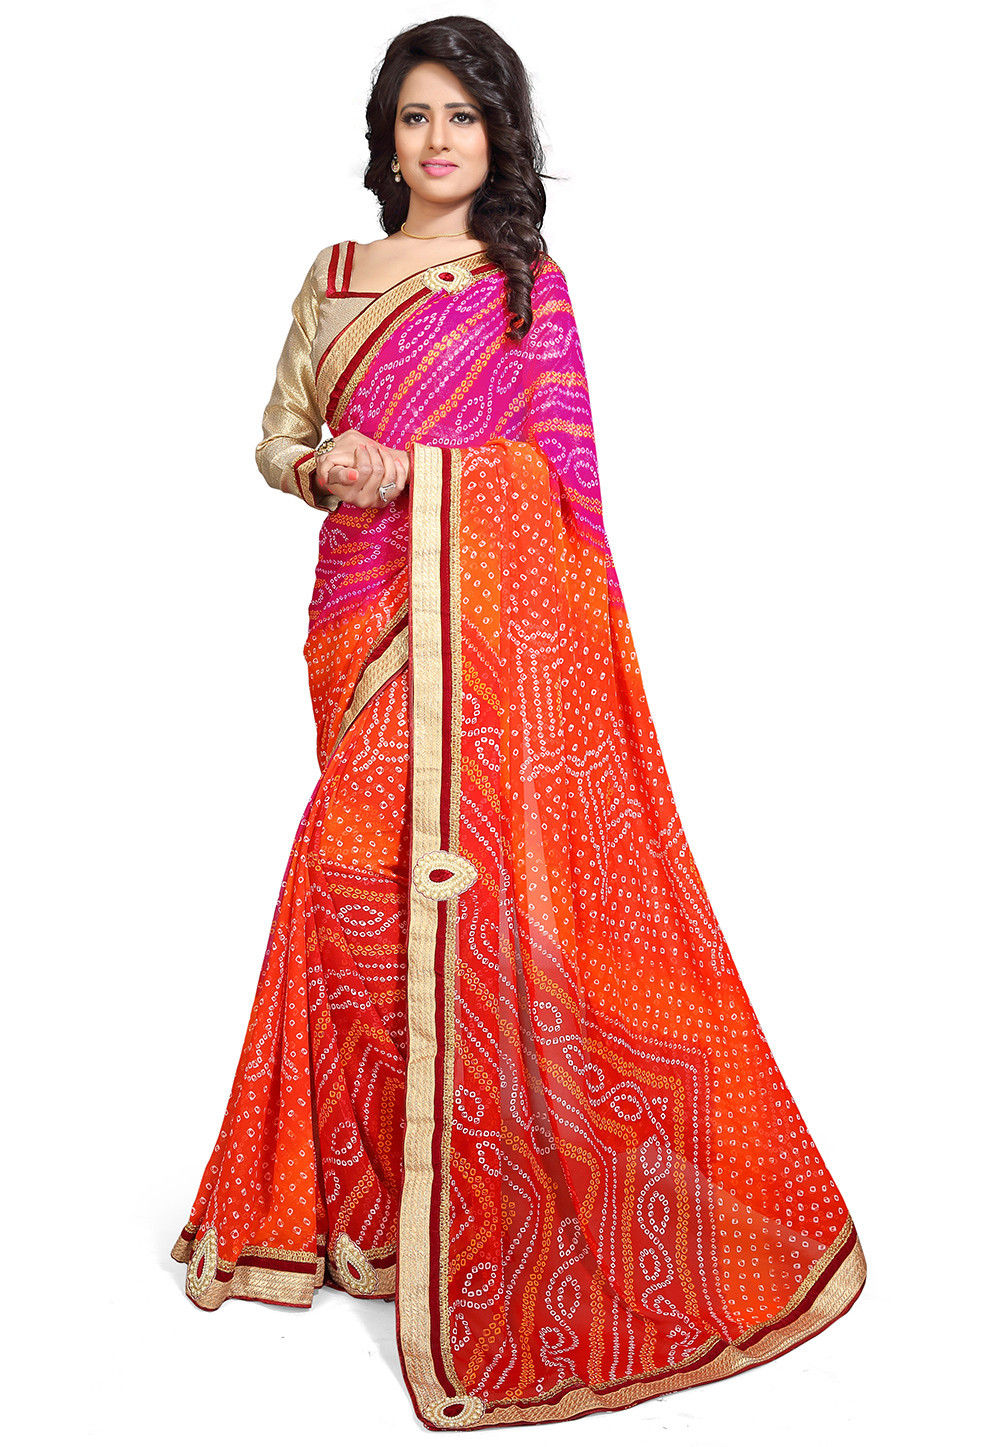 Bandhej Printed Georgette Saree in Pink and Orange